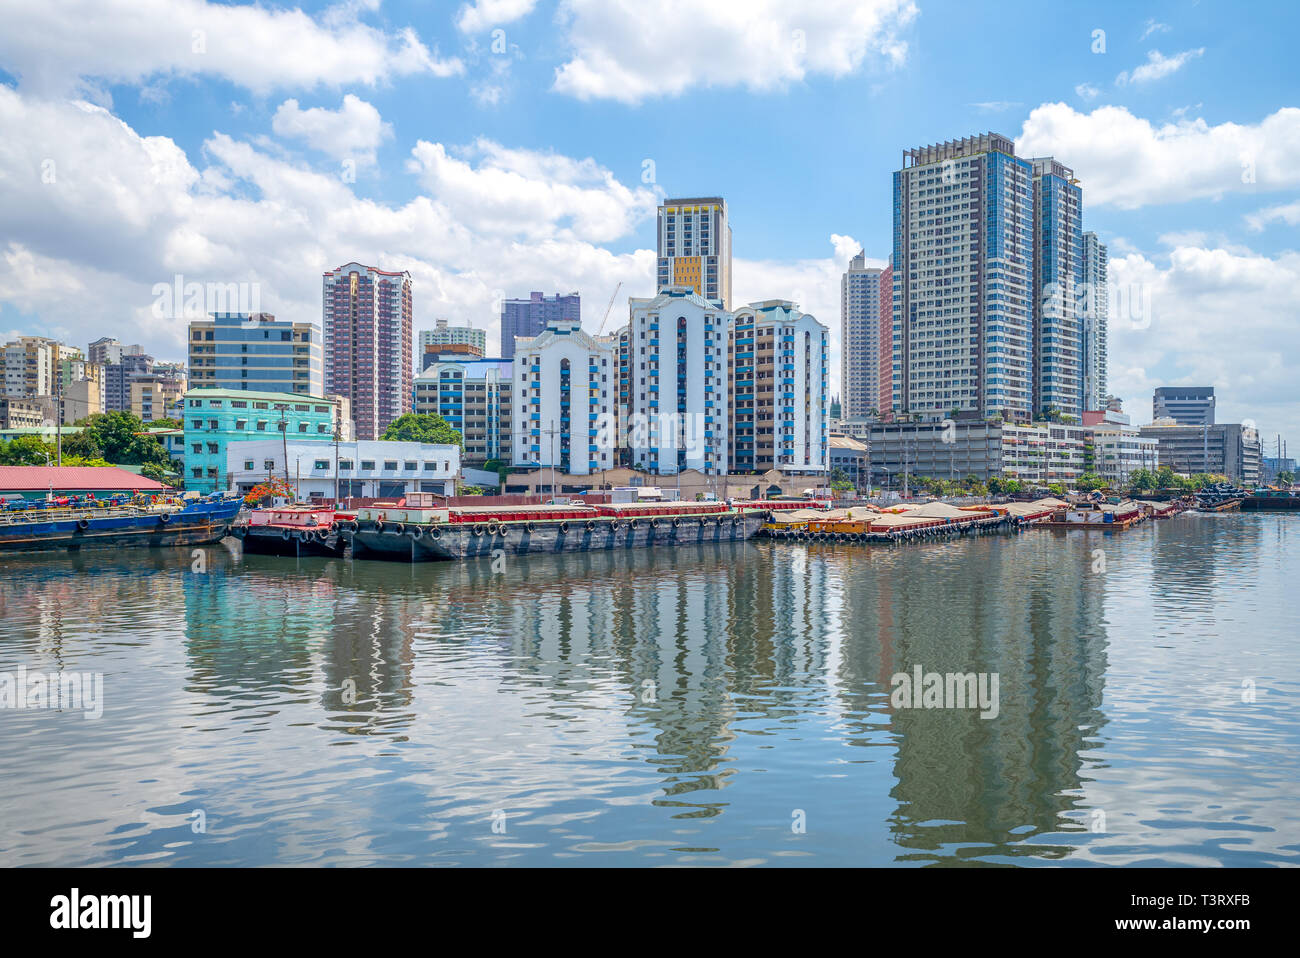 skyline of manila by Pasig River in philippines - Stock Image